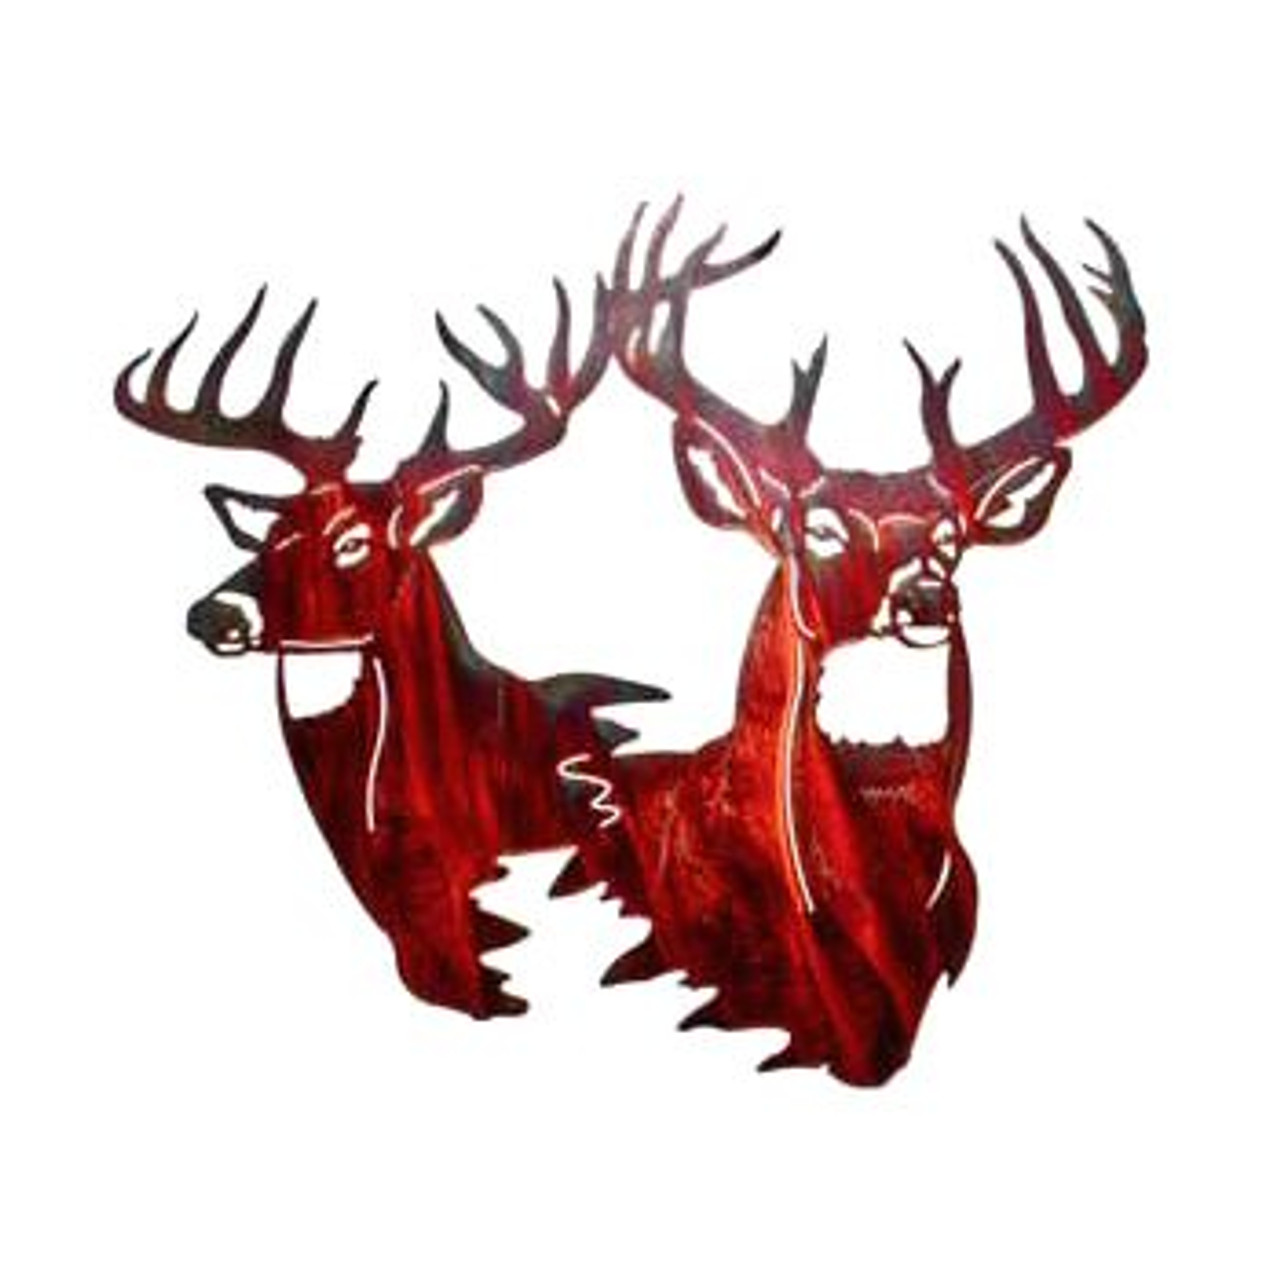 26 Big Two Deer Head Metal Wall Art Wildlife Wall Decor Lazart